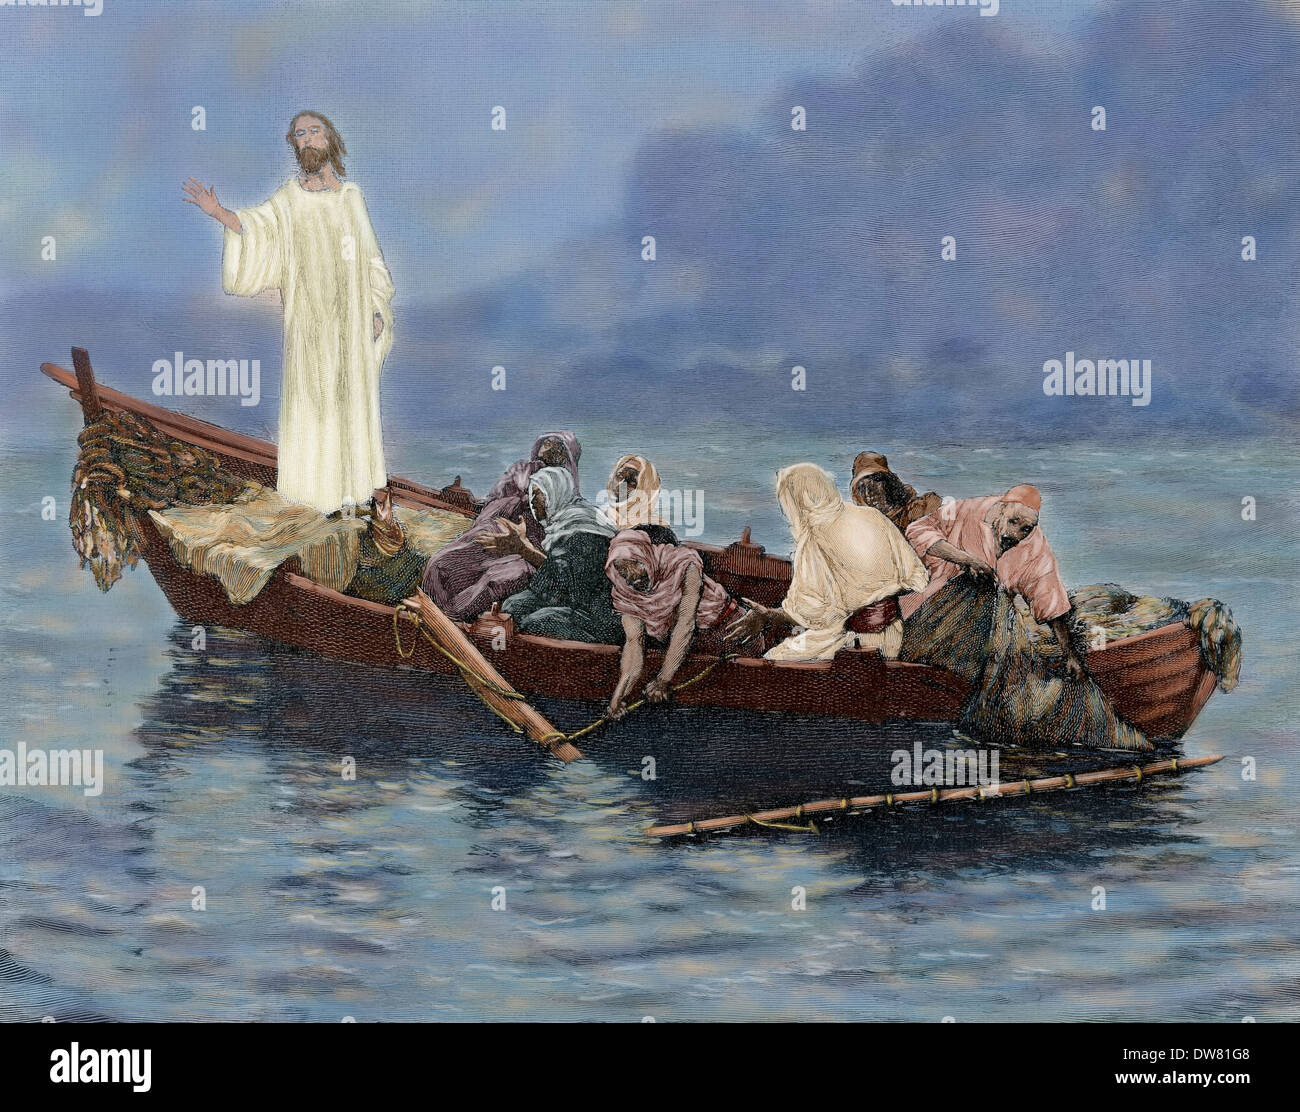 New Testament. Jesus. Where is your faith? After a painting of G. Guida. Engraving by Mancastropa. Colored. - Stock Image